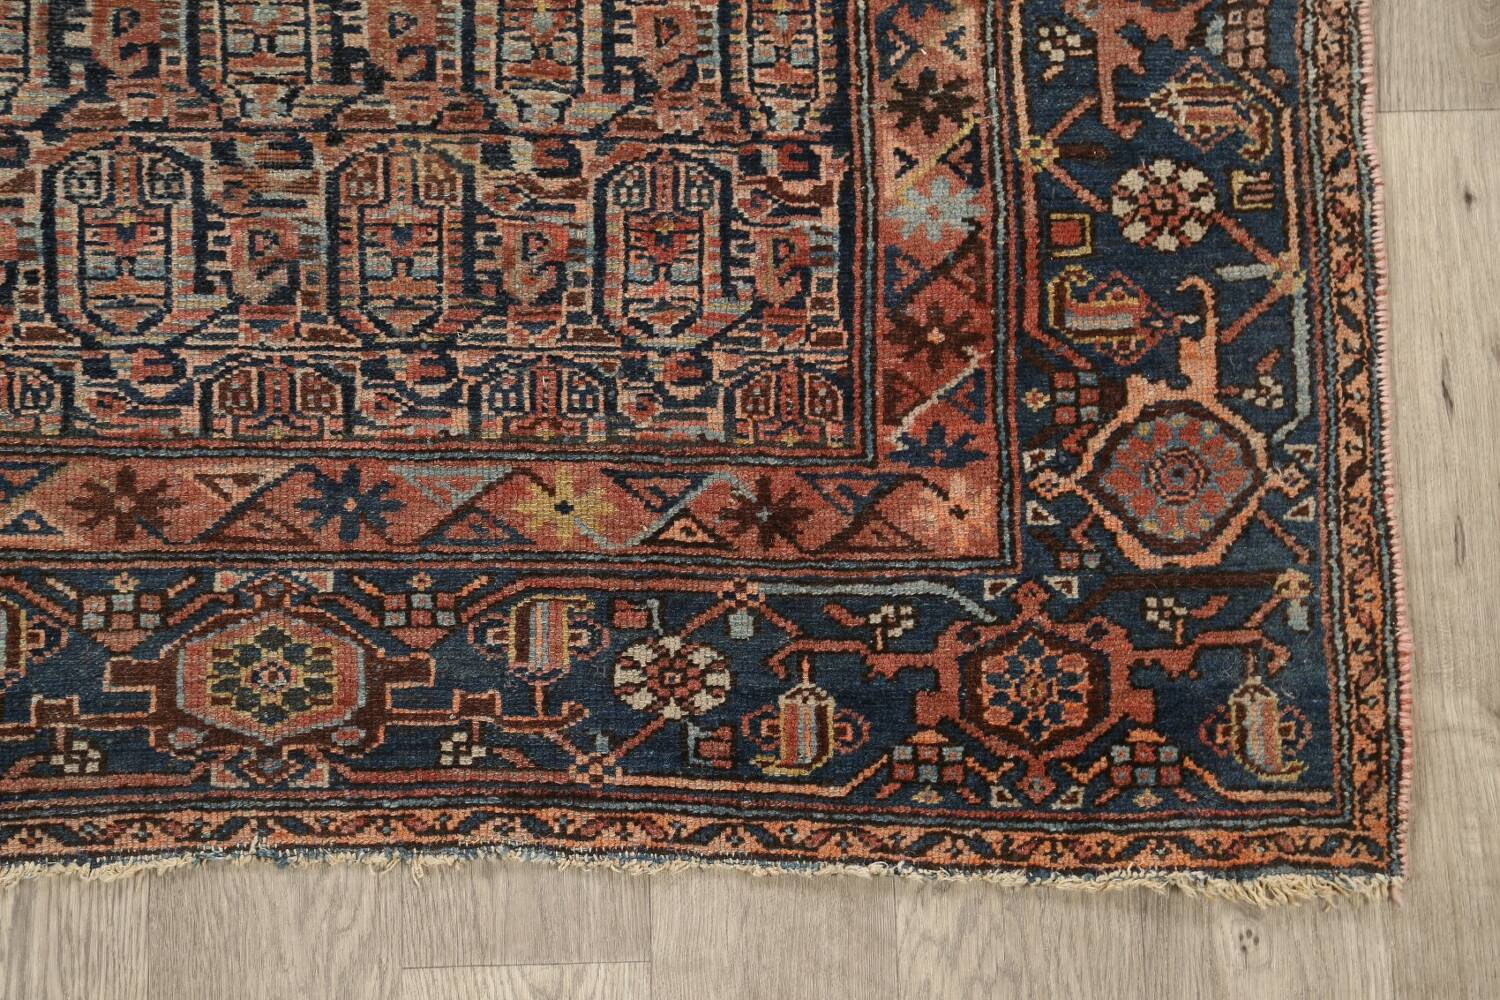 Pre-1900 Antique Tribal Malayer Persian Area Rug 4x6 image 5